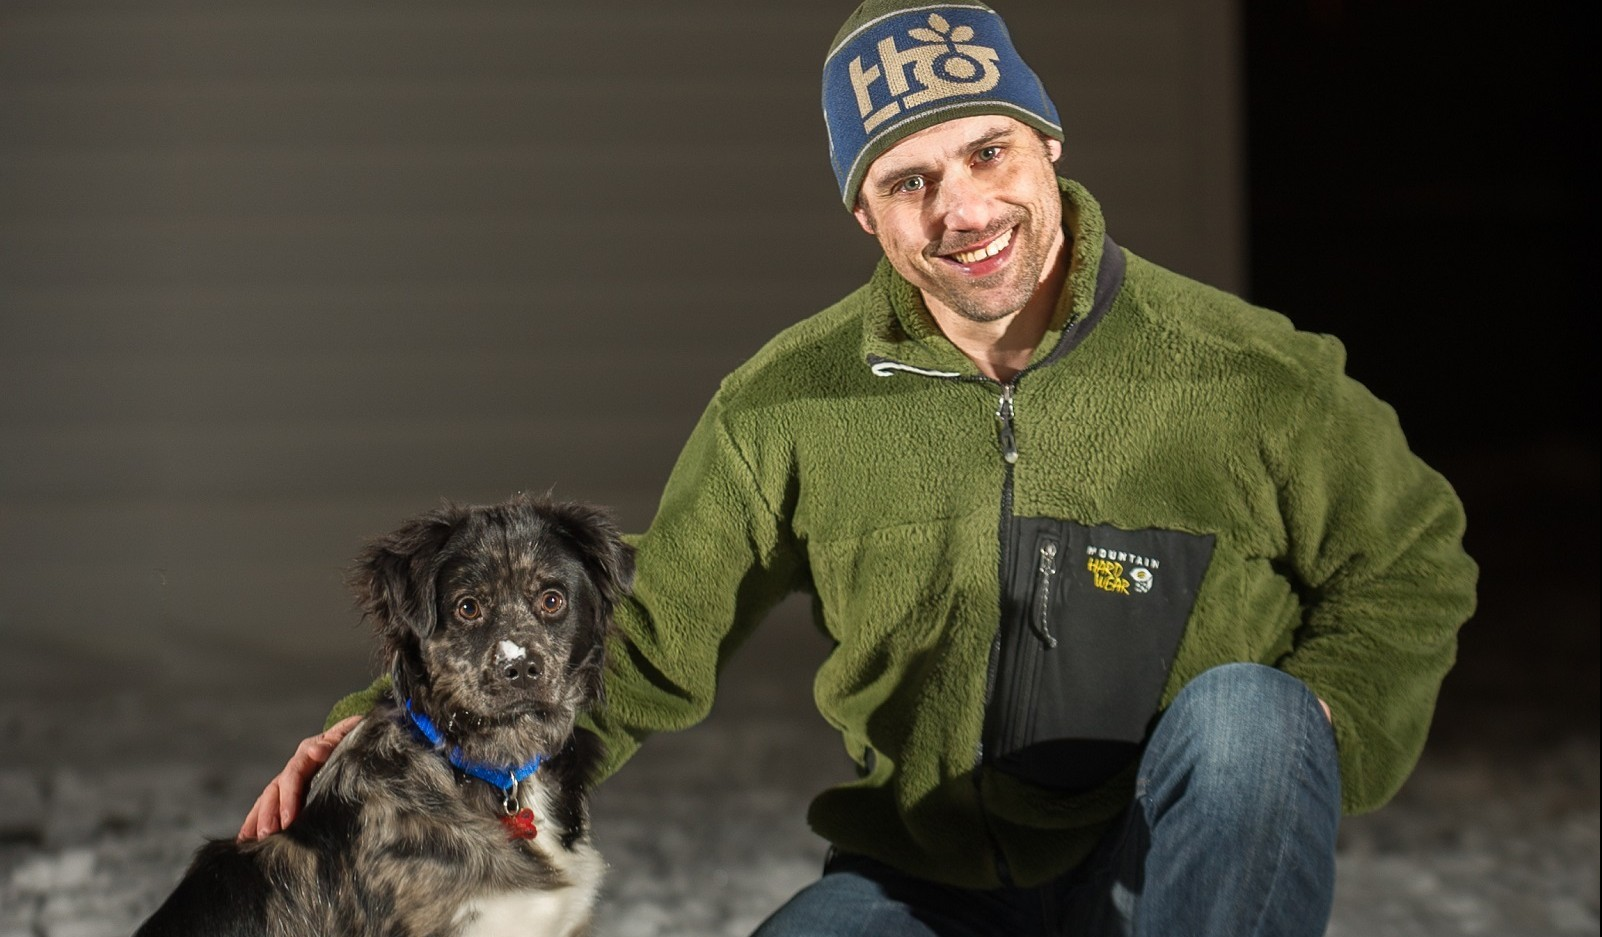 Aaron Ingrao, right, with his dog, Luke. (Aaron Ingrao)